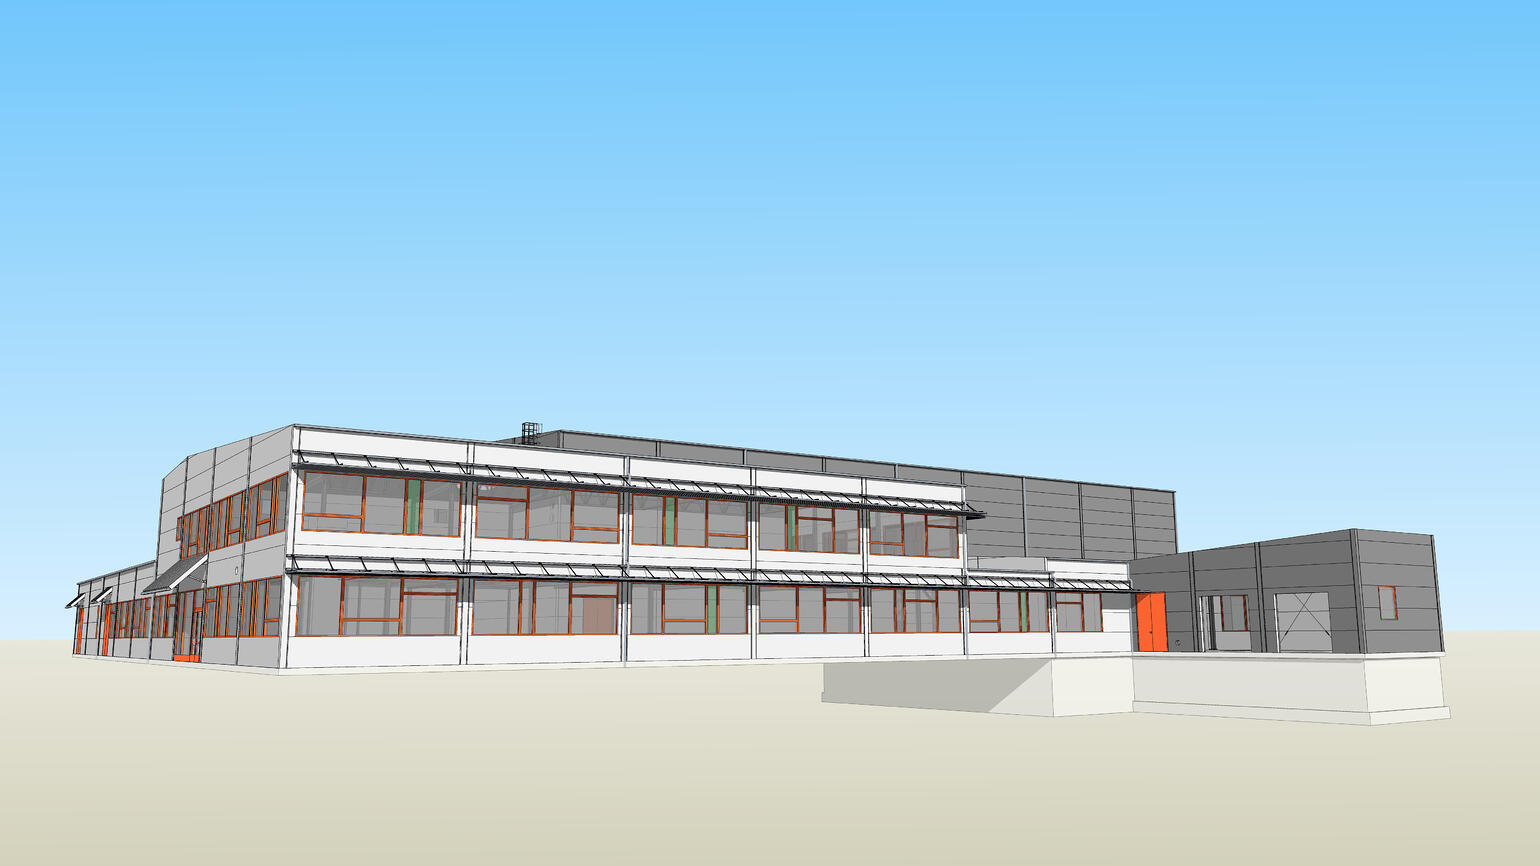 Northpower Stålhallar takes this design all the way to finished project using SketchUp